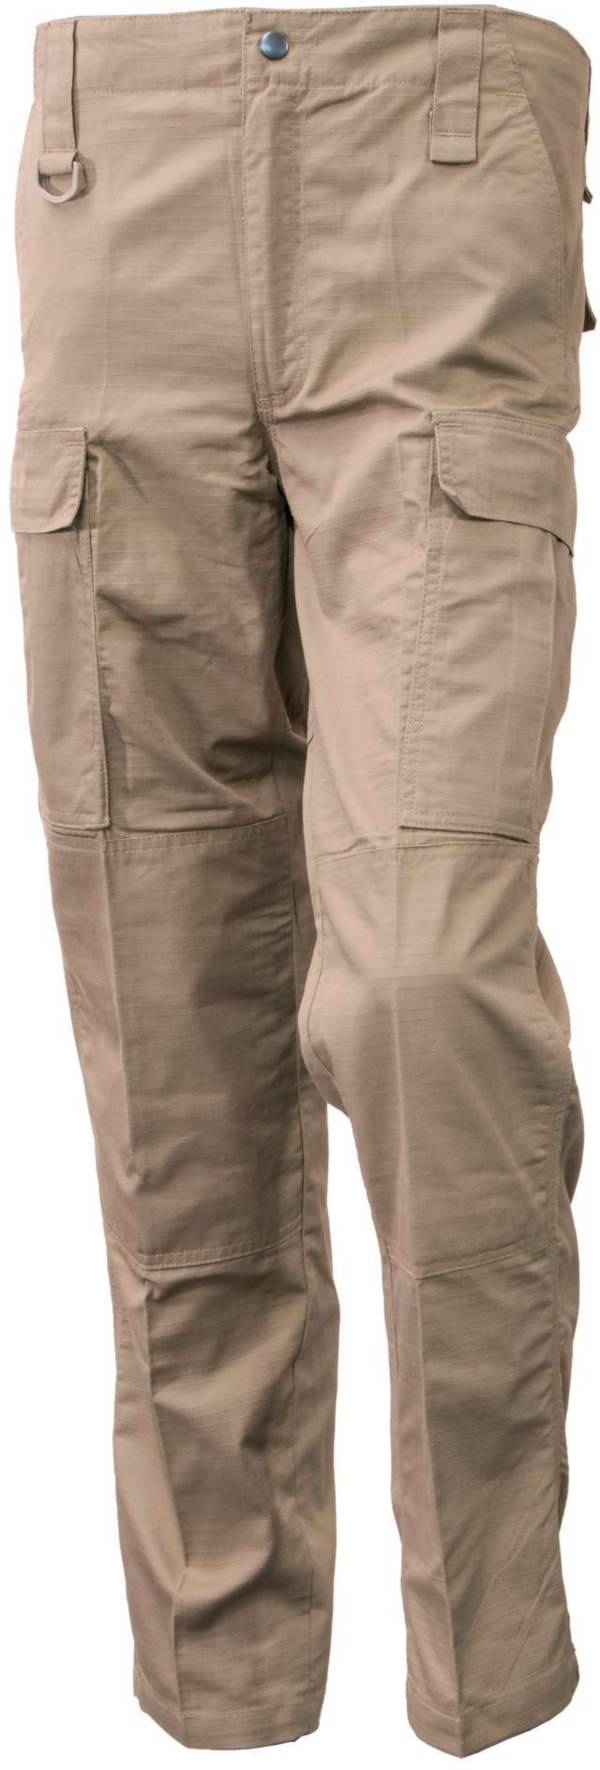 Tippmann Tactical TDU Pants product image